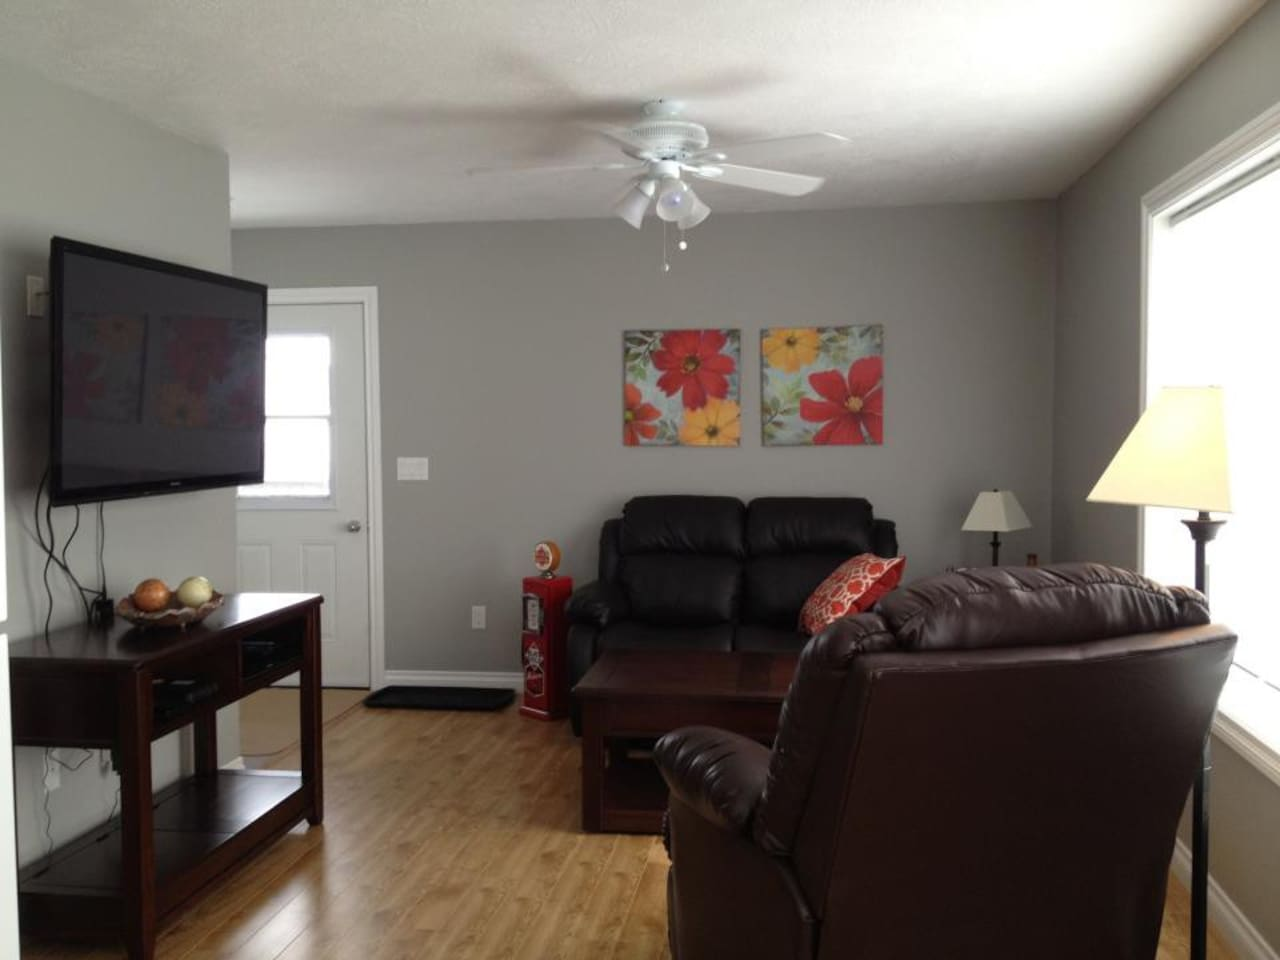 Leather reclining furniture and big screen TV